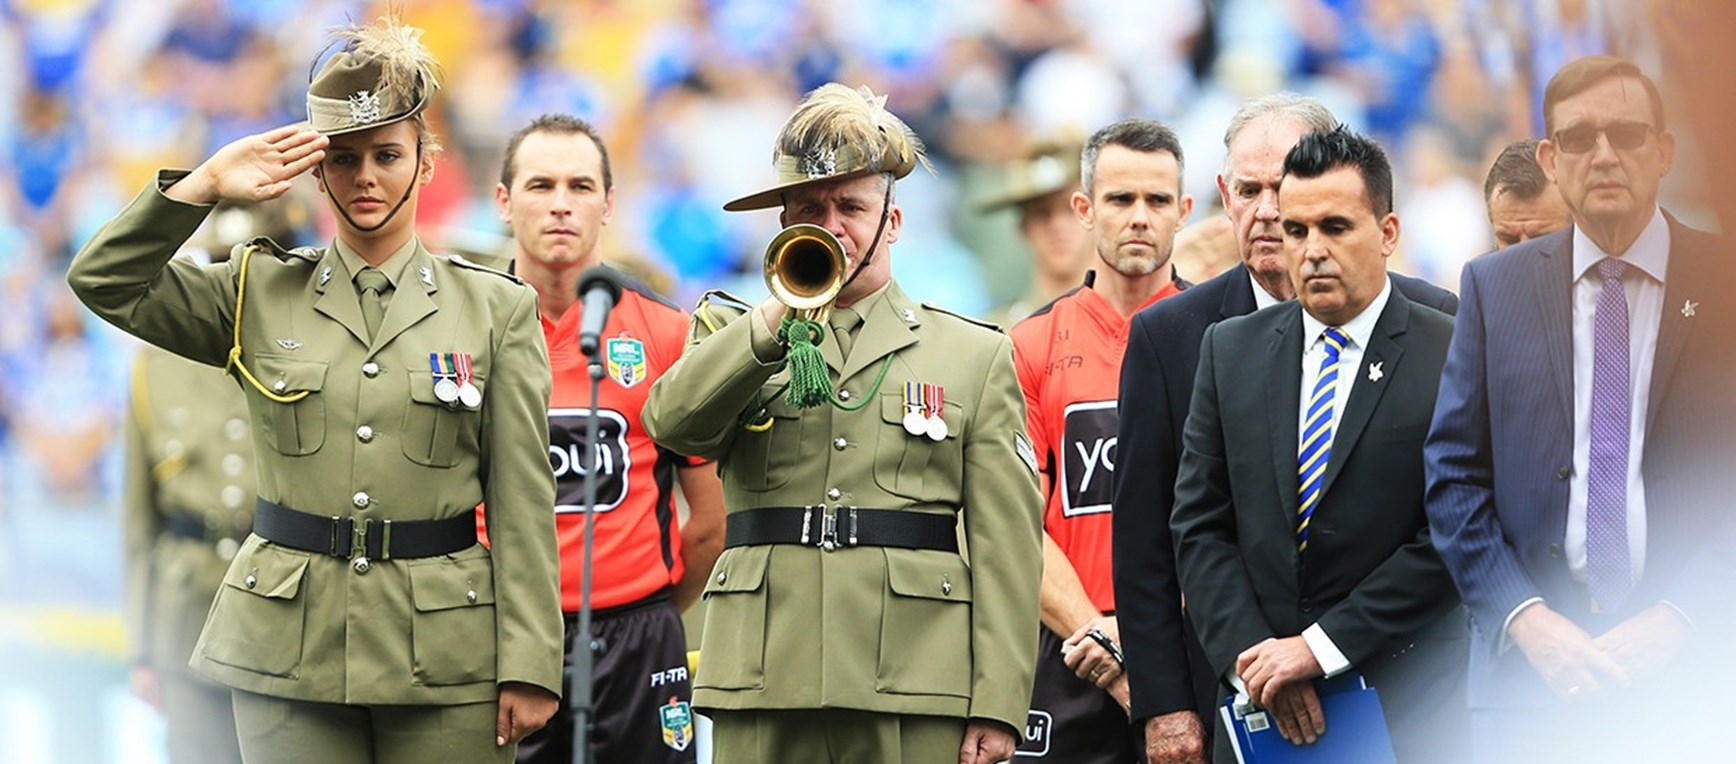 AROUND THE GROUNDS | Eels v Penrith Panthers, Salute to Service